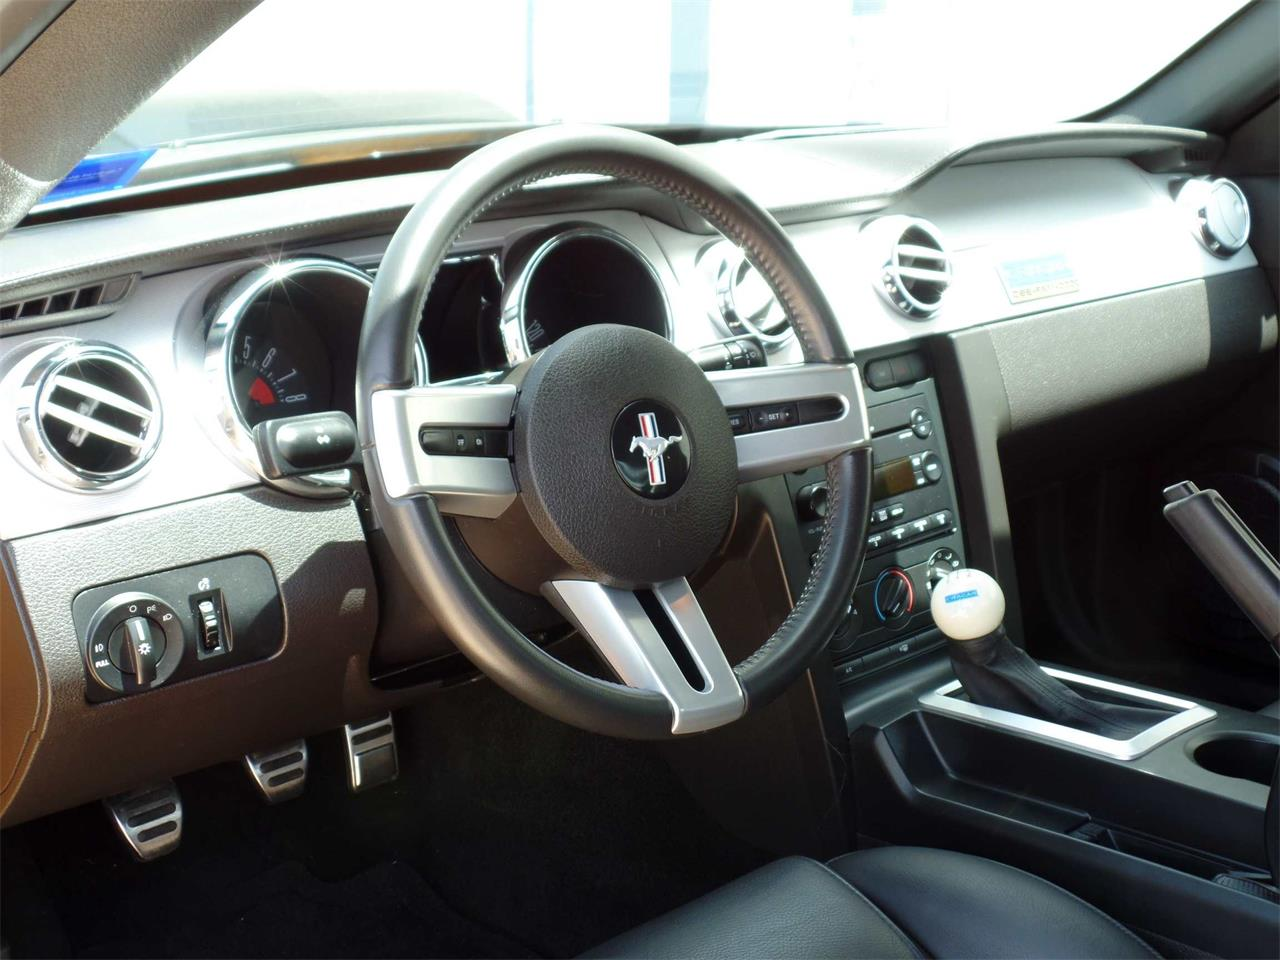 2007 Ford Mustang (CC-1218923) for sale in Granbury, Texas